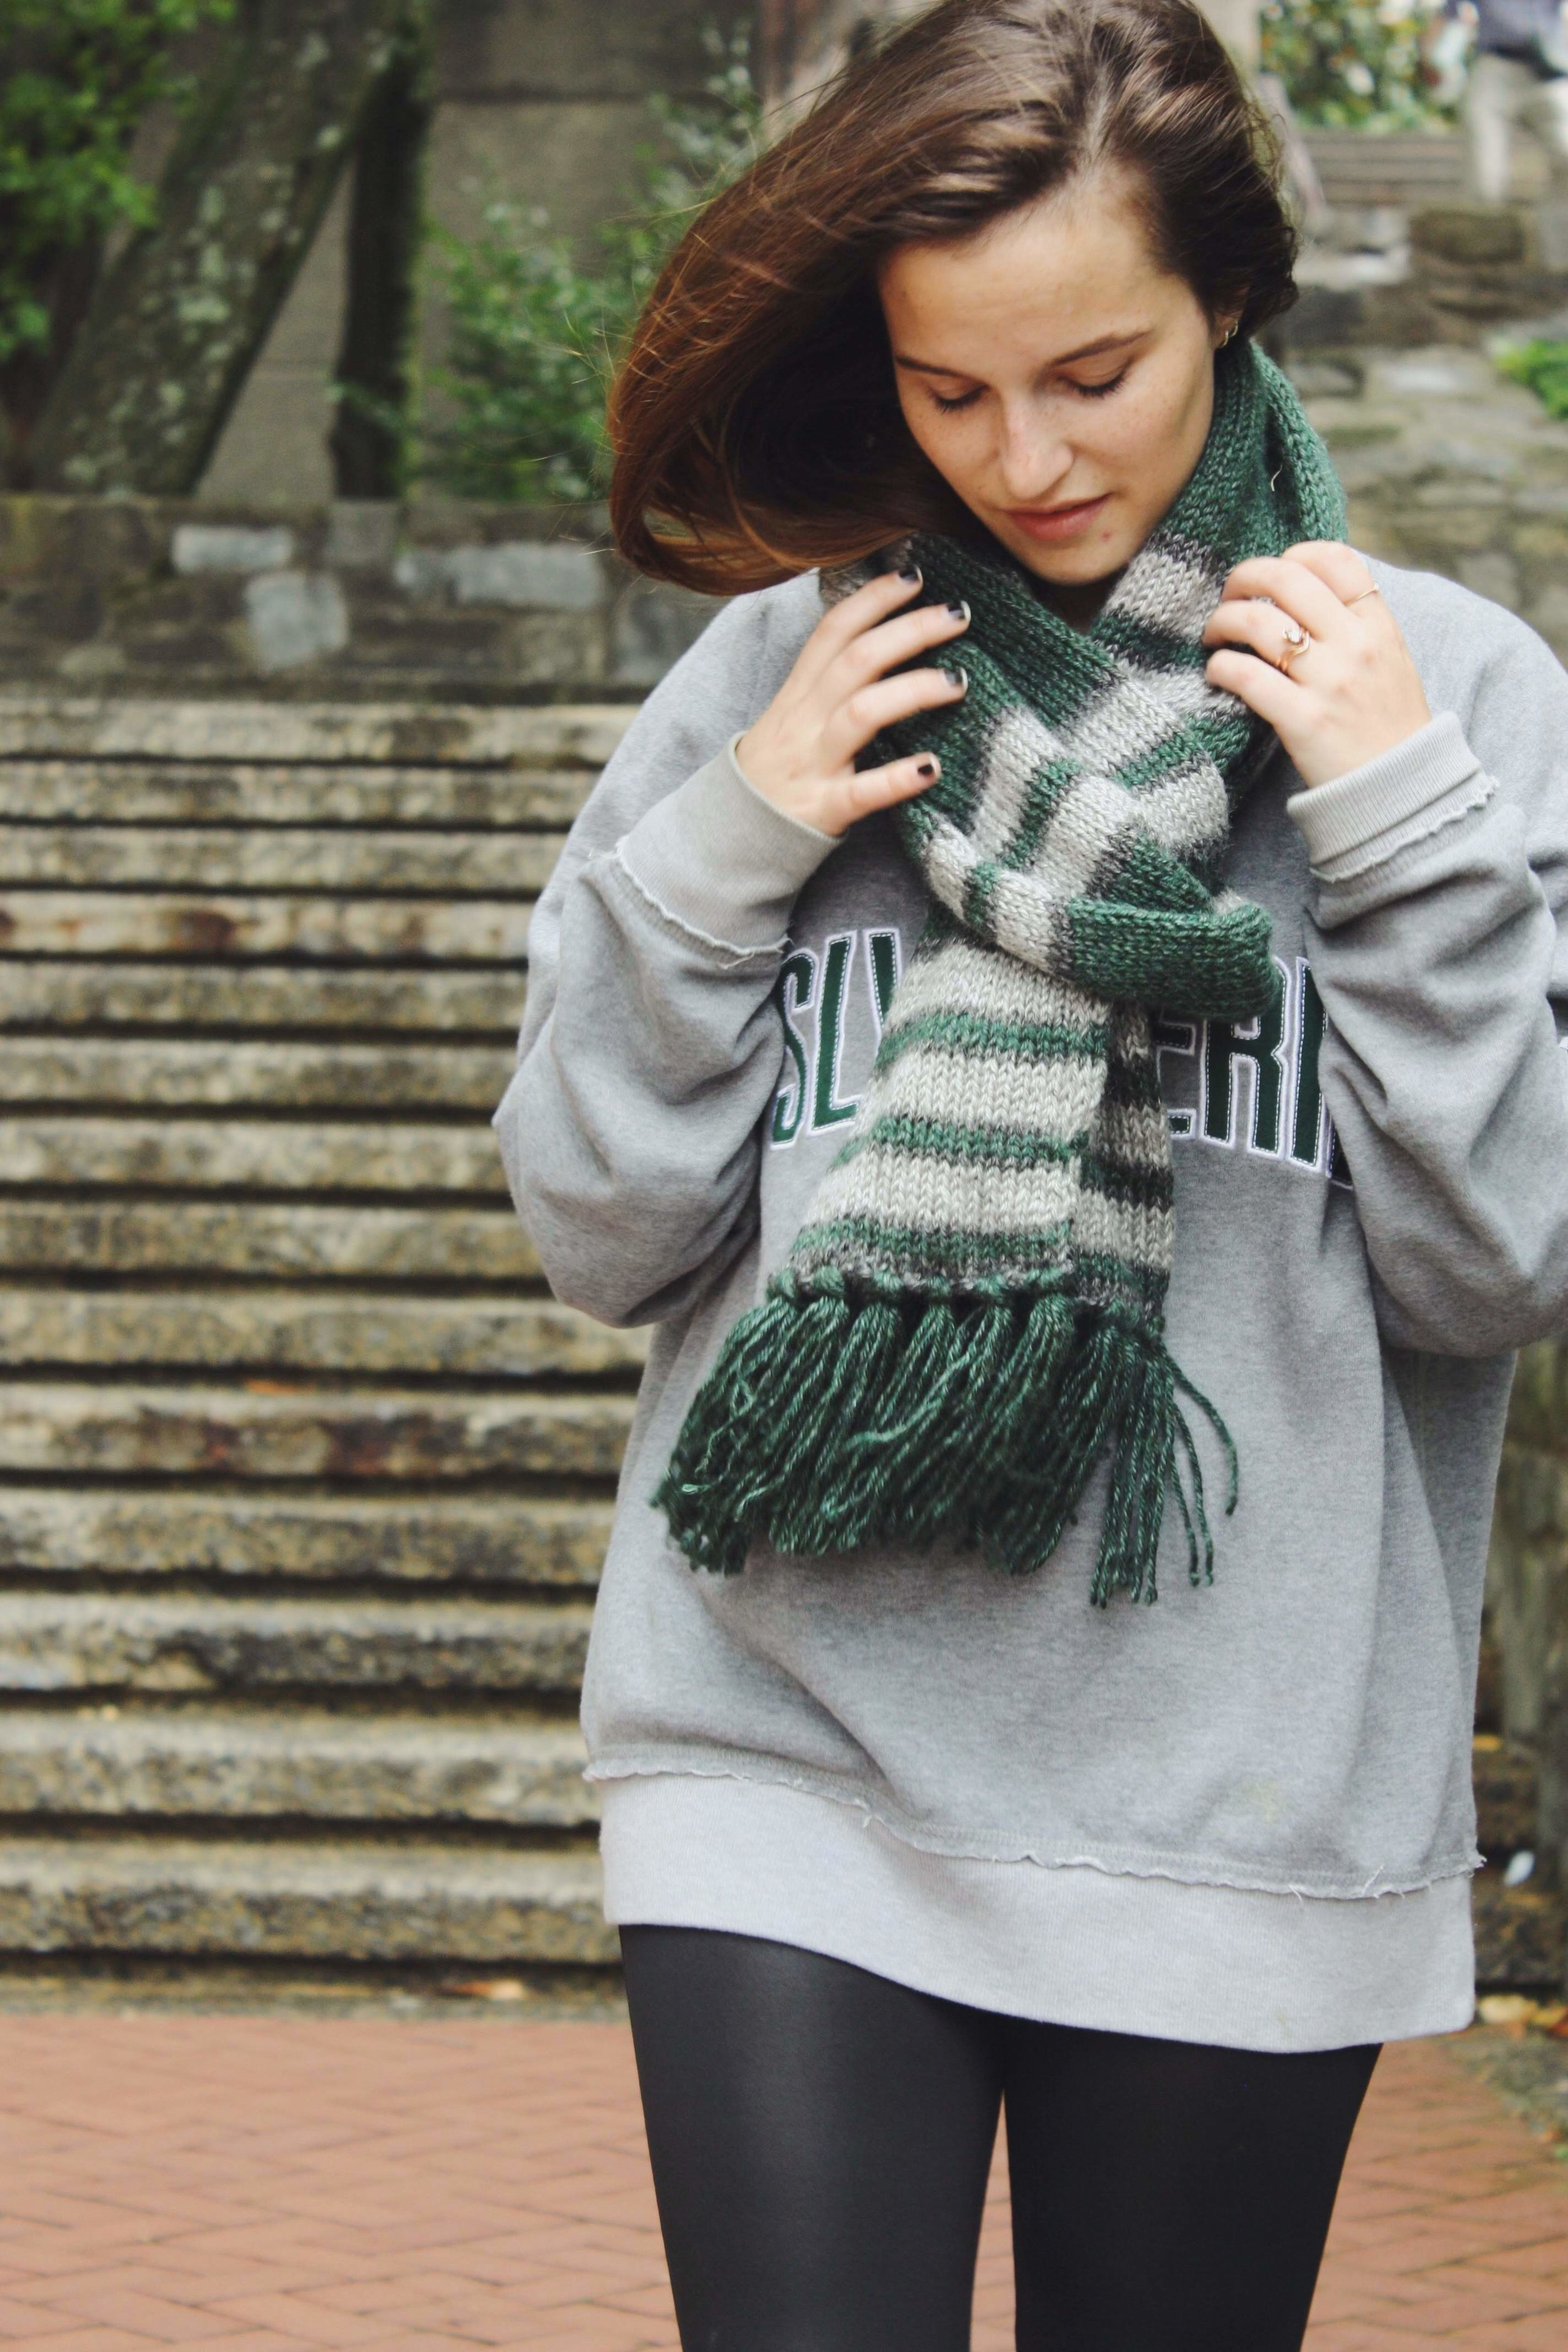 A Cursed Scarf - Free Harry Potter Knitting Pattern